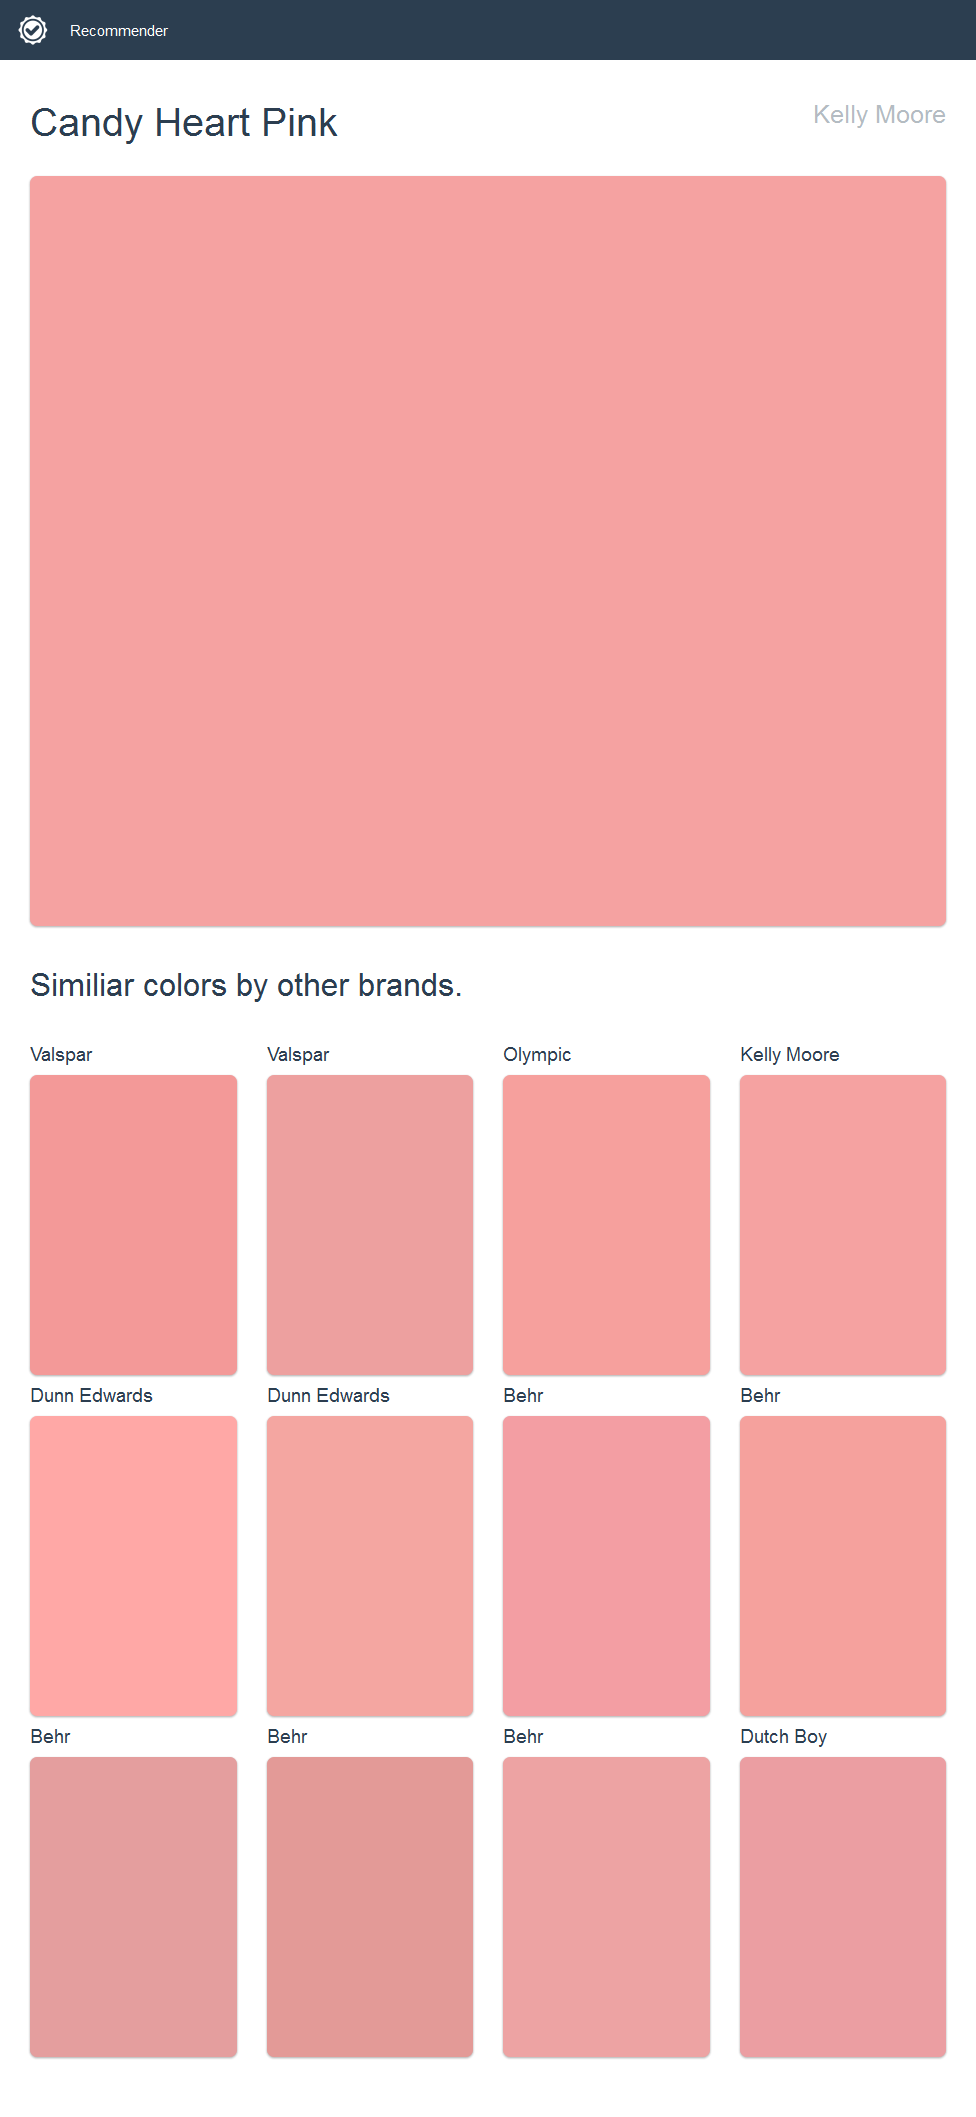 Candy Heart Pink, Kelly Moore. Click the image to see similiar ...